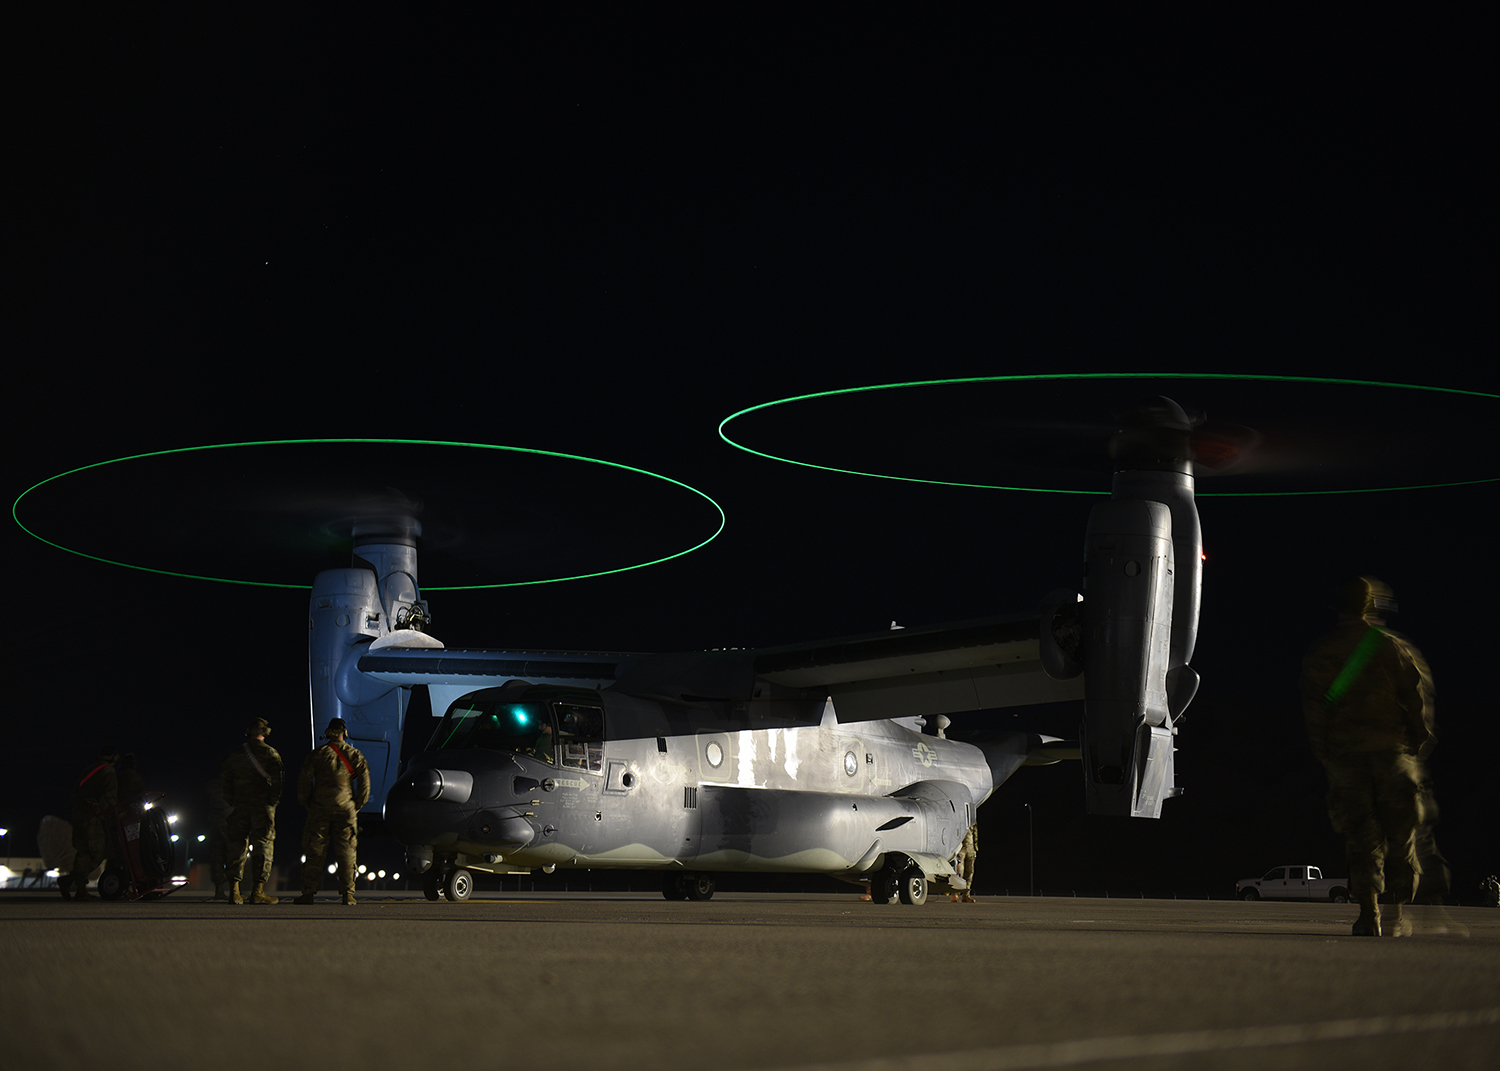 Tactical aircraft maintainers prepare to launch a CV-22B Osprey tiltrotor aircraft at Nellis Air Force Base, Nev., Oct. 10, 2019. (Airman 1st Class Bryan Guthrie/Air Force)